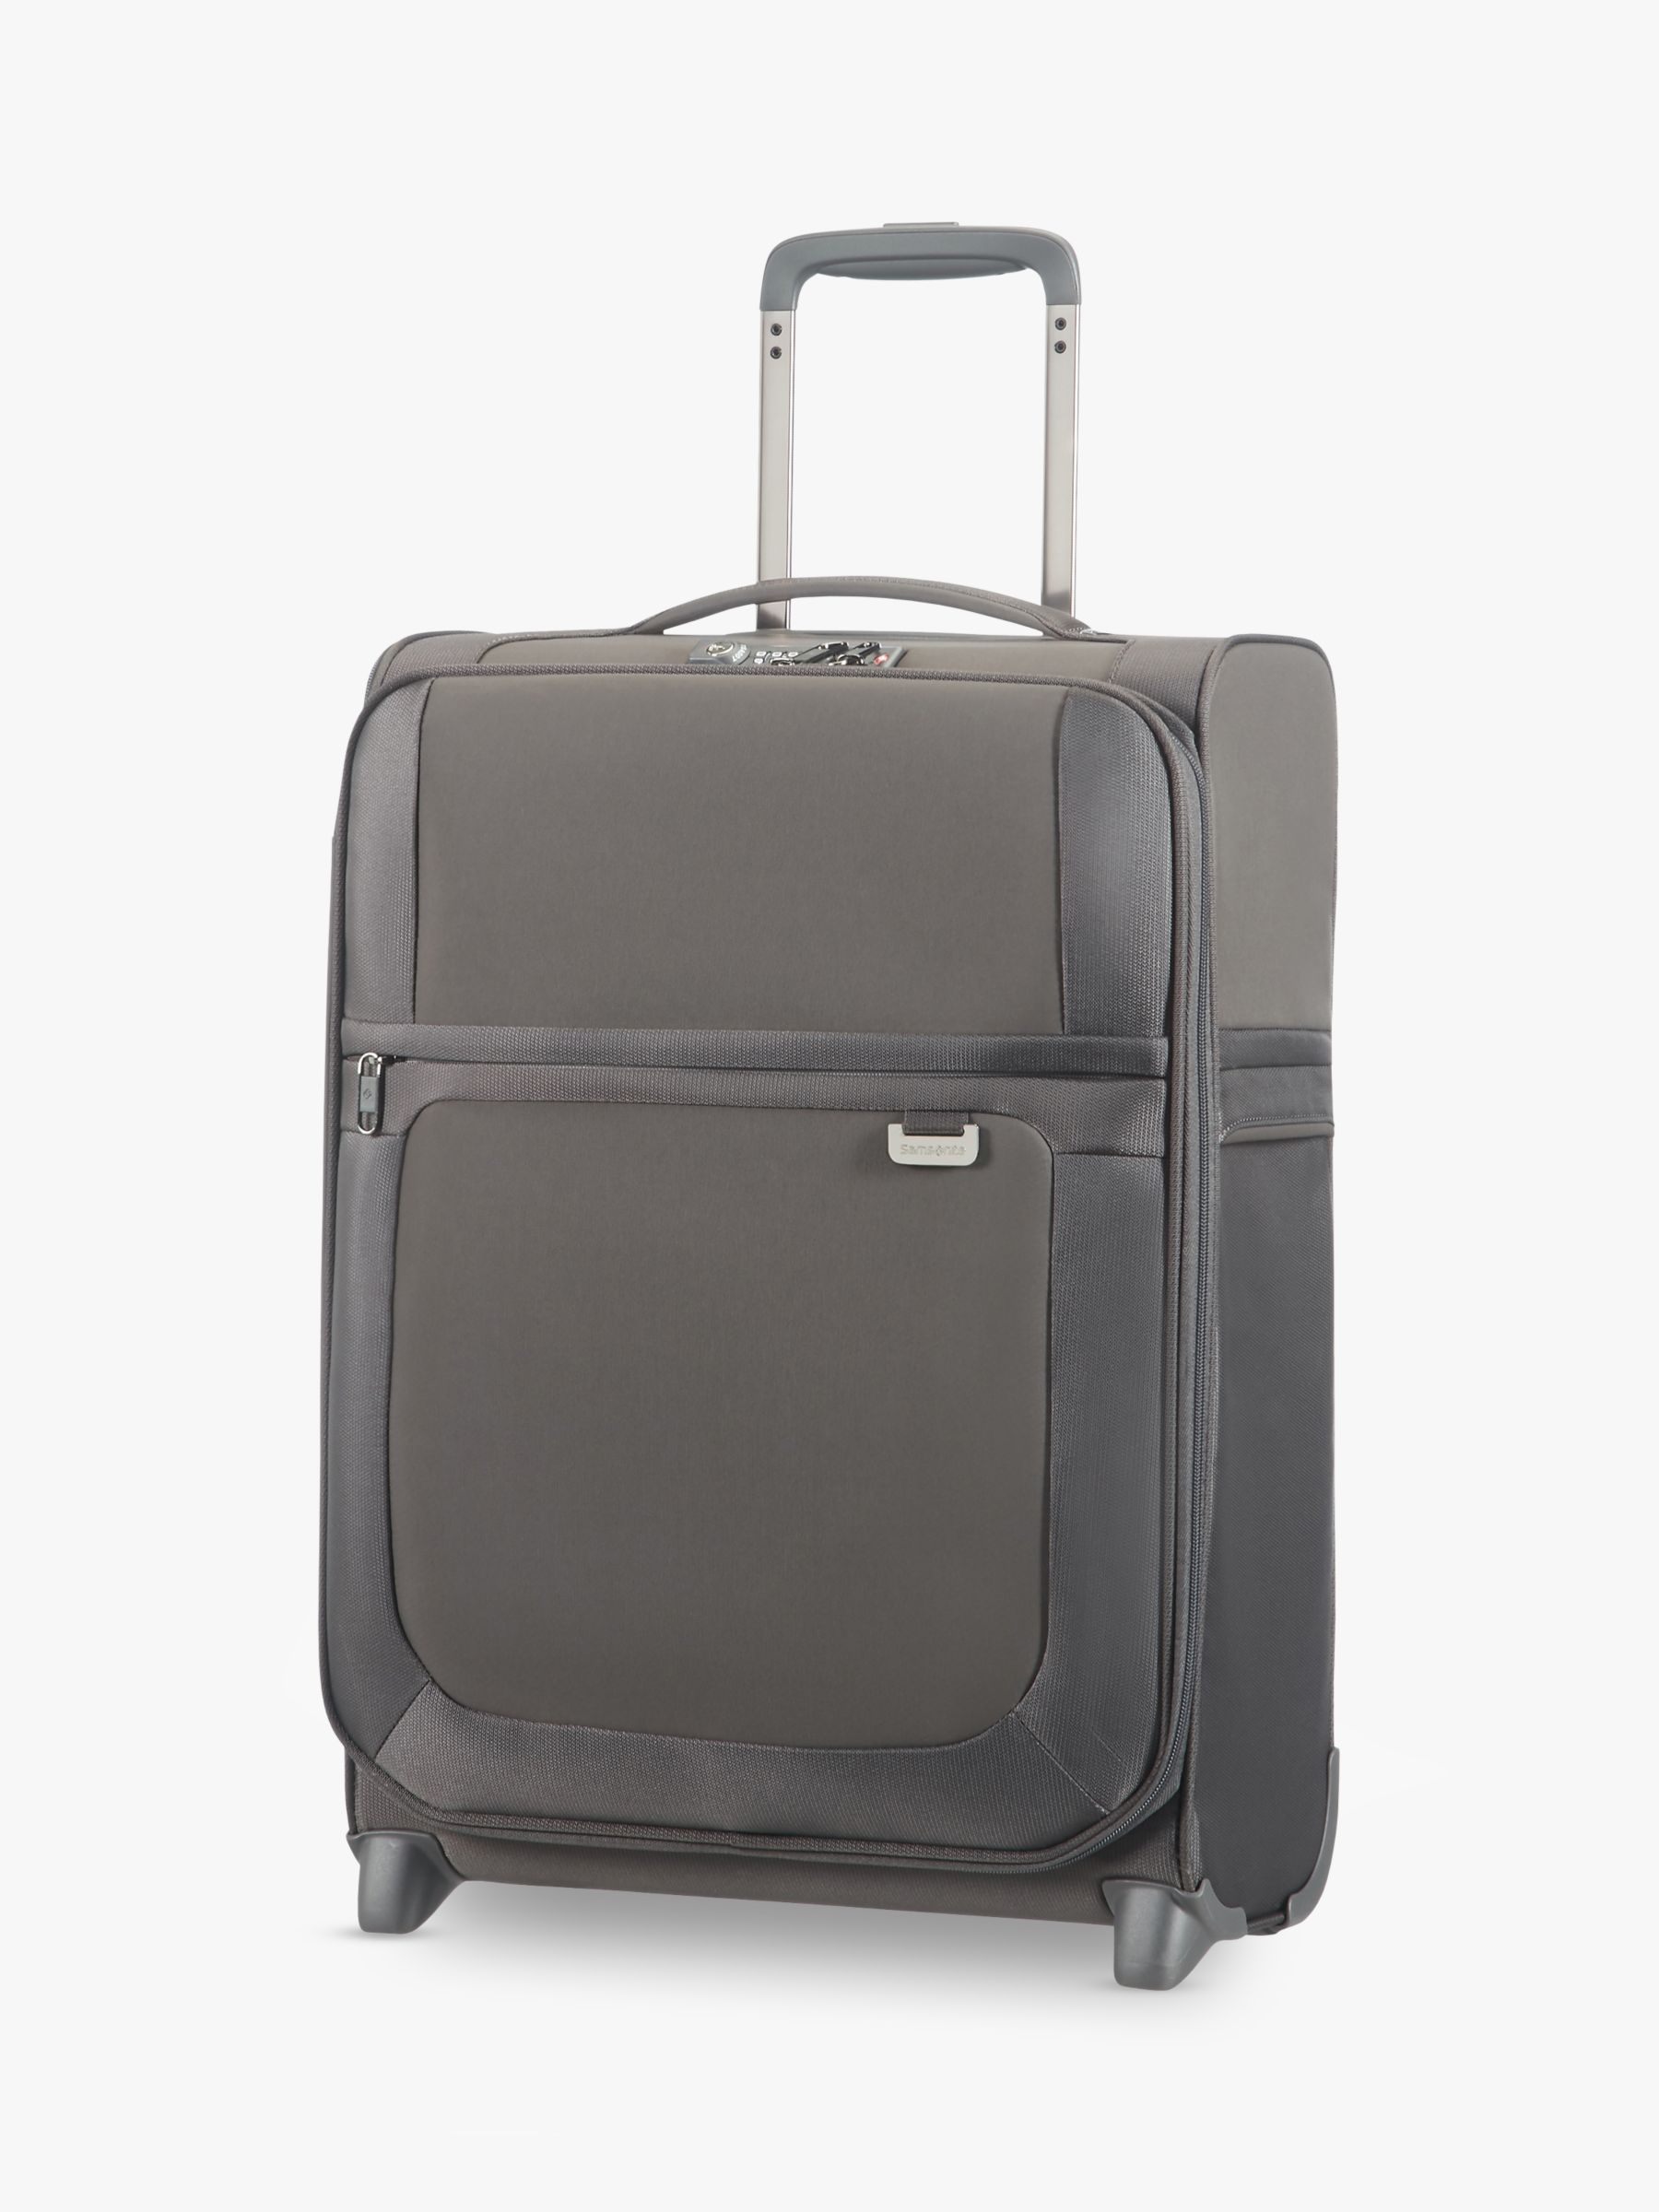 Samsonite Samsonite Uplite 2-Wheel 55cm Cabin Suitcase